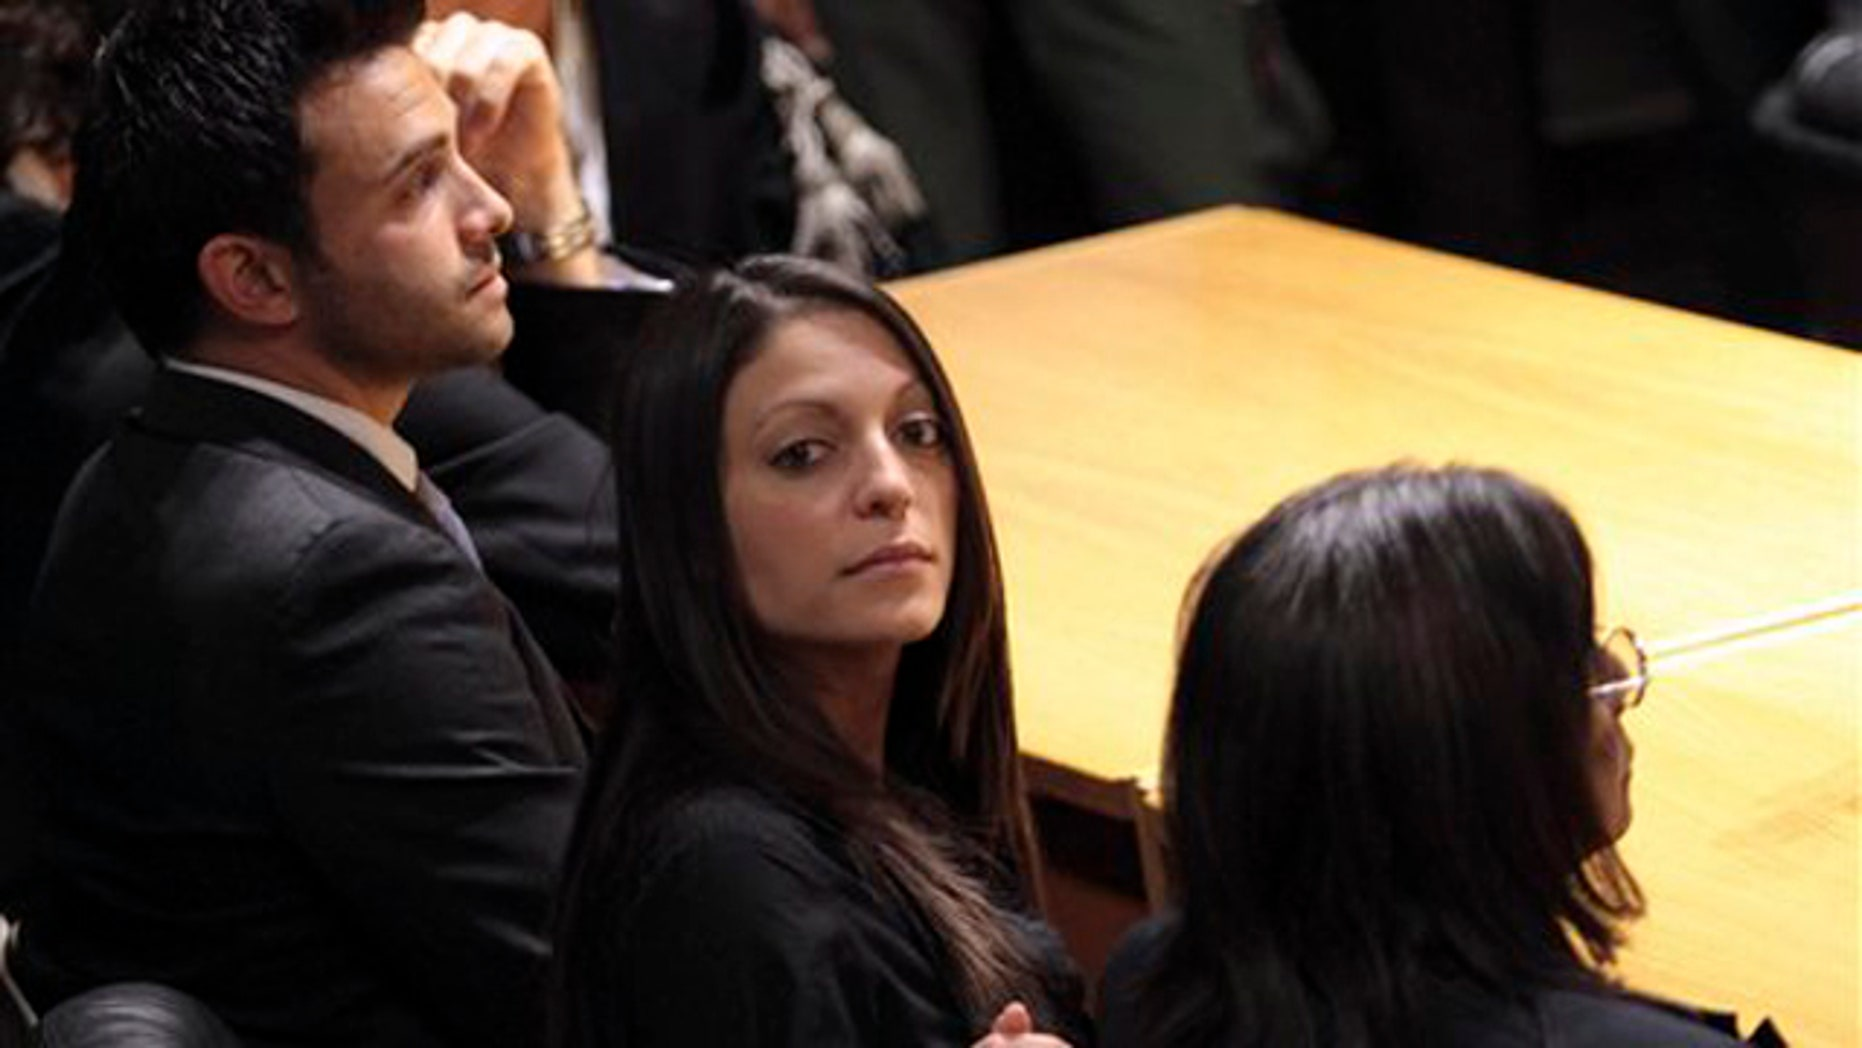 From left, Meredith Kercher's brother Lyle, sister Stephanie and mother Arline wait for the verdict in the Amanda Knox appeals trial at the Perugia court, Italy, Monday Oct. 3, 2011.